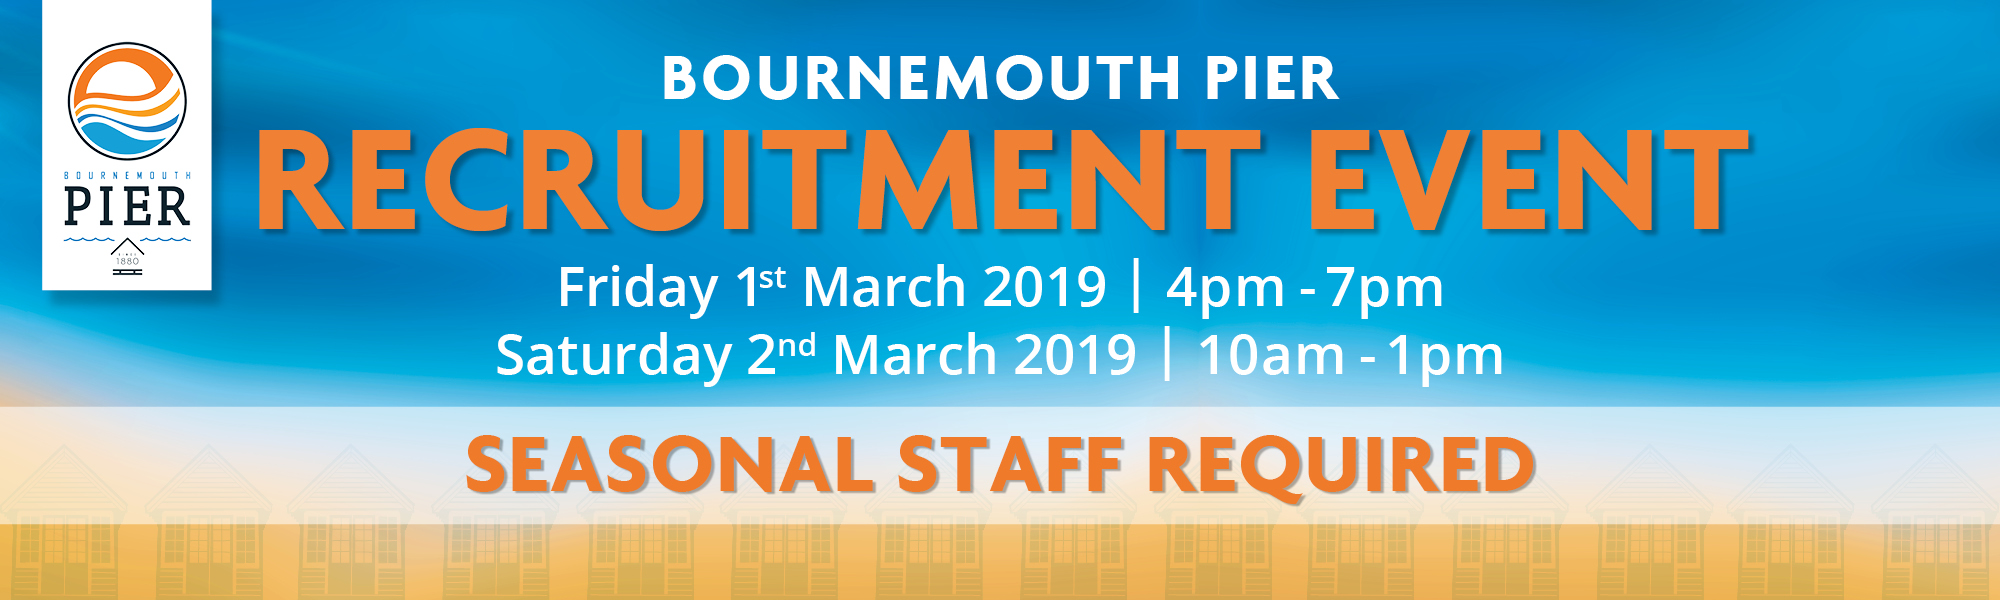 Recruitment Event at Bournemouth Pier